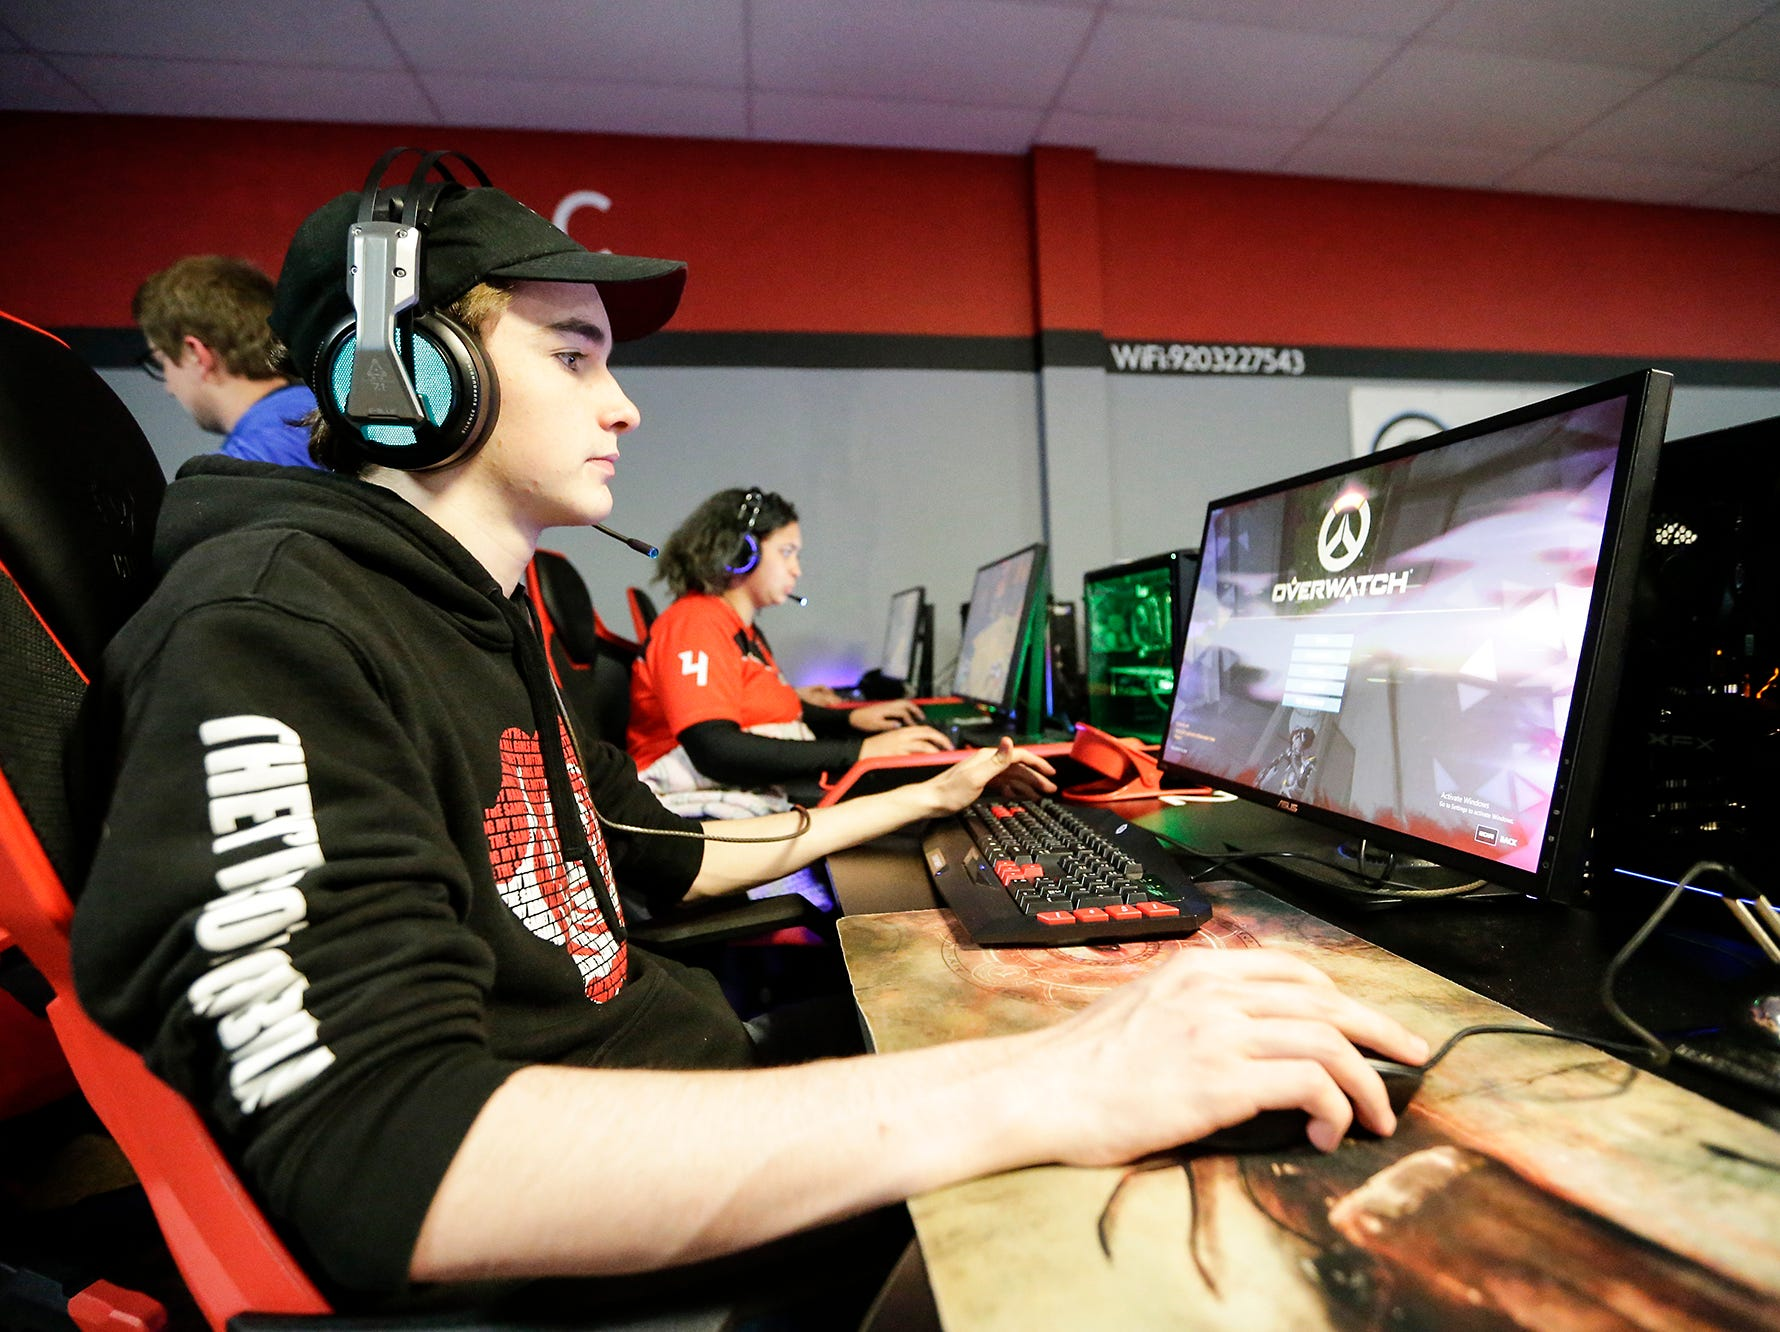 Robert Clark of Racine is one of dozens of Students from schools throughout Wisconsin taking part in the Wisconsin High School Esports Association's State Championship Saturday, April 13, 2019 at Game On in Fond du Lac Wisconsin. Teams compete in 4 games during the event. Overwatch, Rocket League, League of Legends, and Smash Ultimate. Doug Raflik/USA TODAY NETWORK-Wisconsin